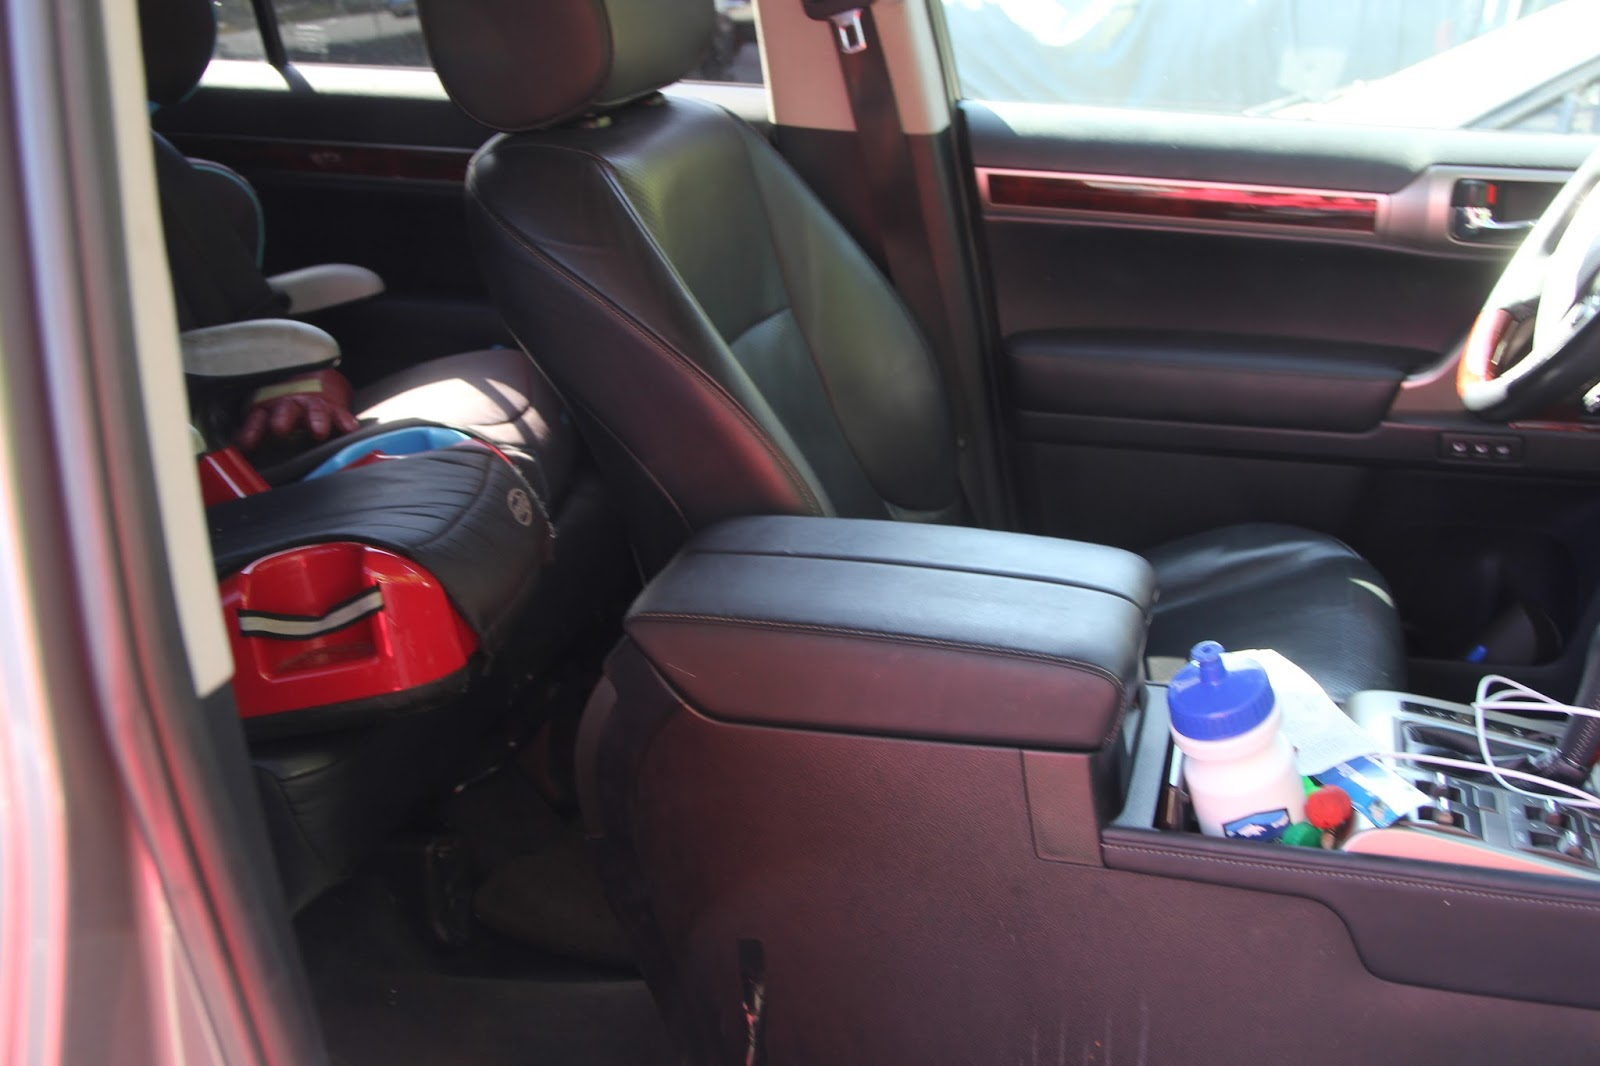 Cooks Upholstery And Classic Restoration Lexus Suv Headrest Repair